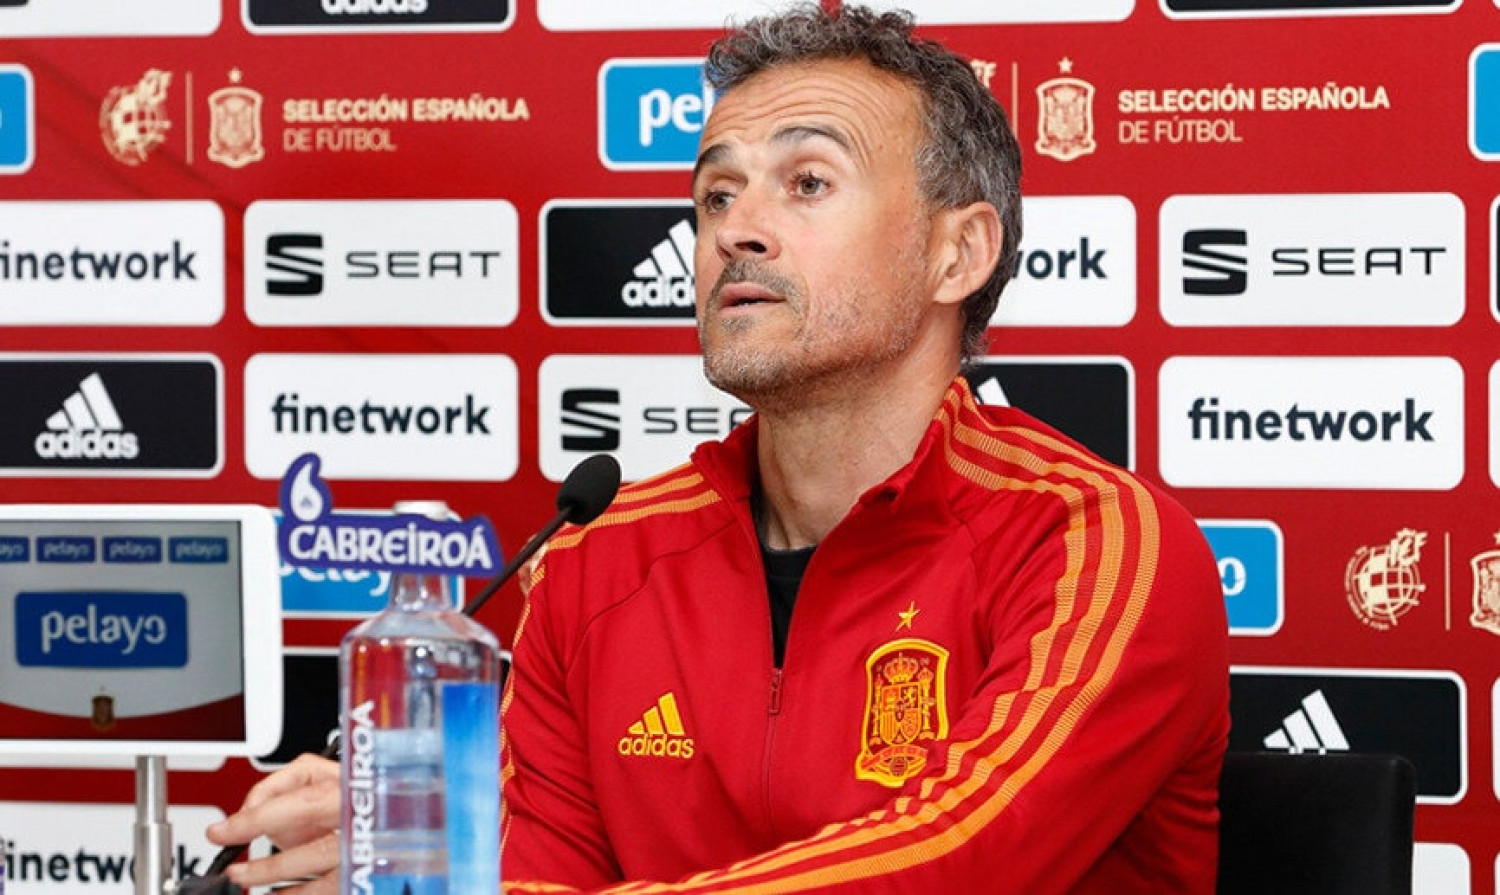 Spanish national team manager Luis Enrique photographed during a press conference (image from Spanish Football Federation)